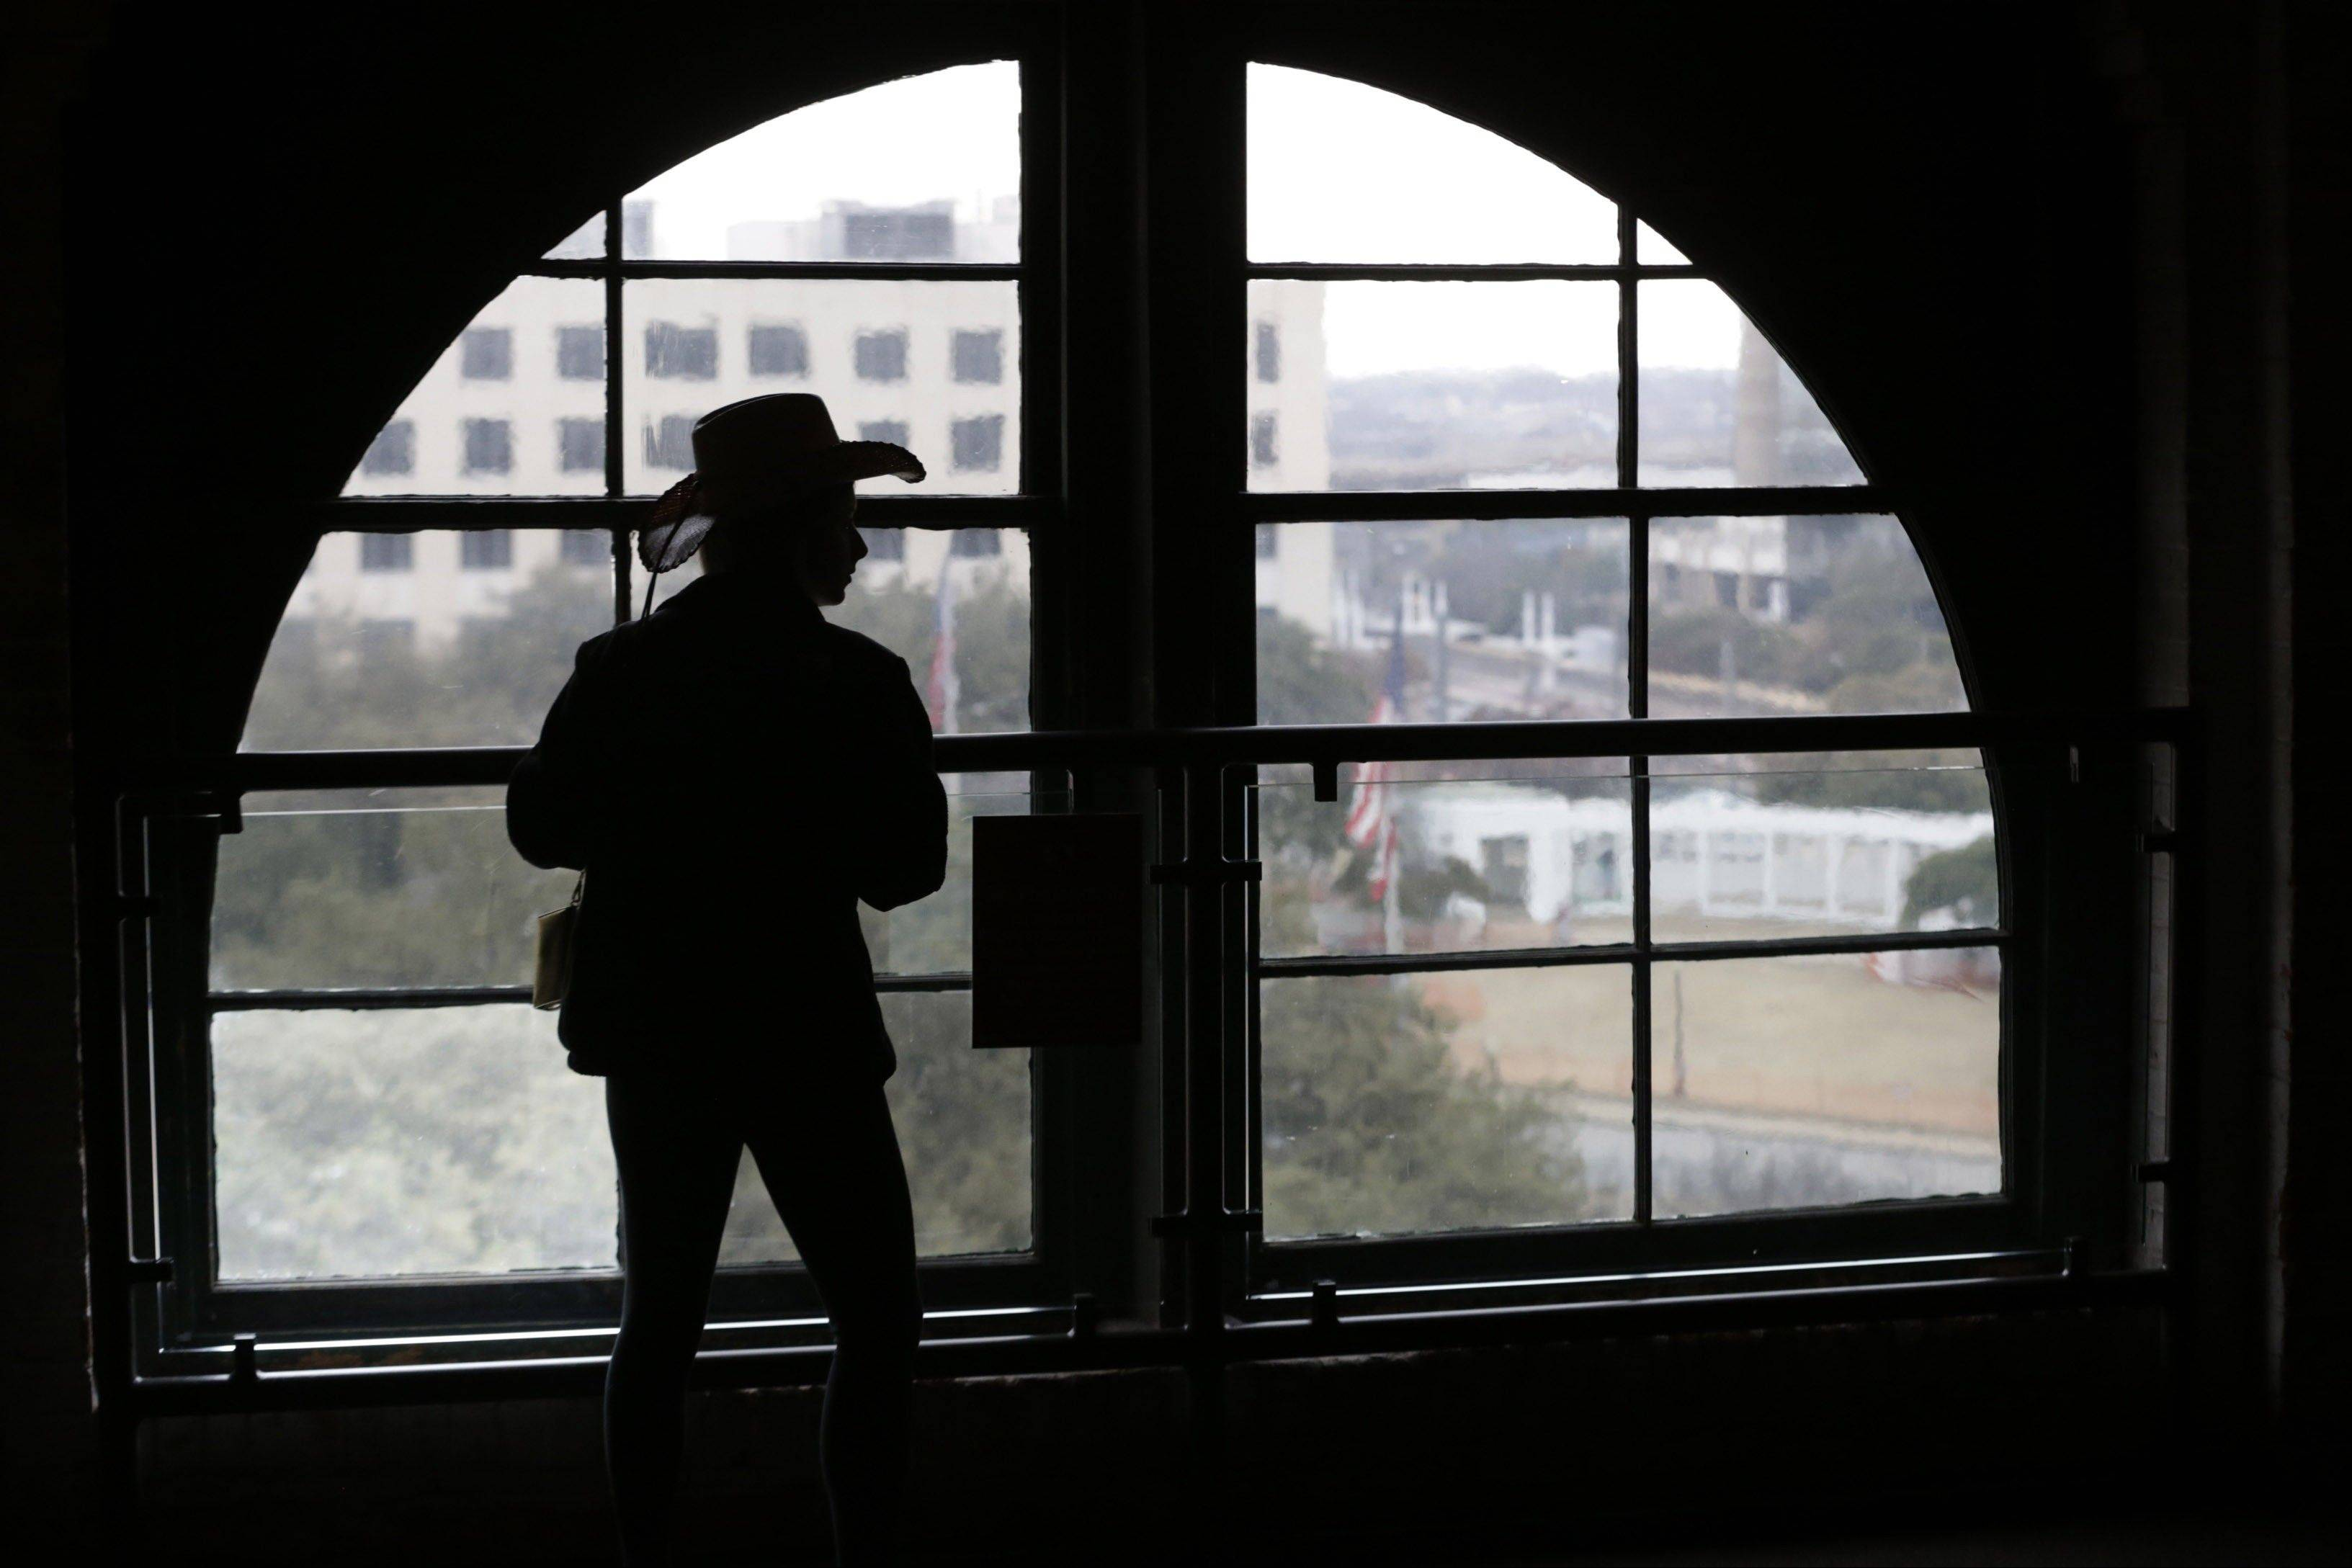 In this photo made Friday, Jan. 25, 2013, a visitor wearing a cowboy hat looks out onto Dealey Plaza from the Sixth Floor Museum located in the former Texas School Book Depository building in Dallas. As the nation and world mark the 50th anniversary this year of the assassination of John F. Kennedy, special attention once again falls on Dallas.